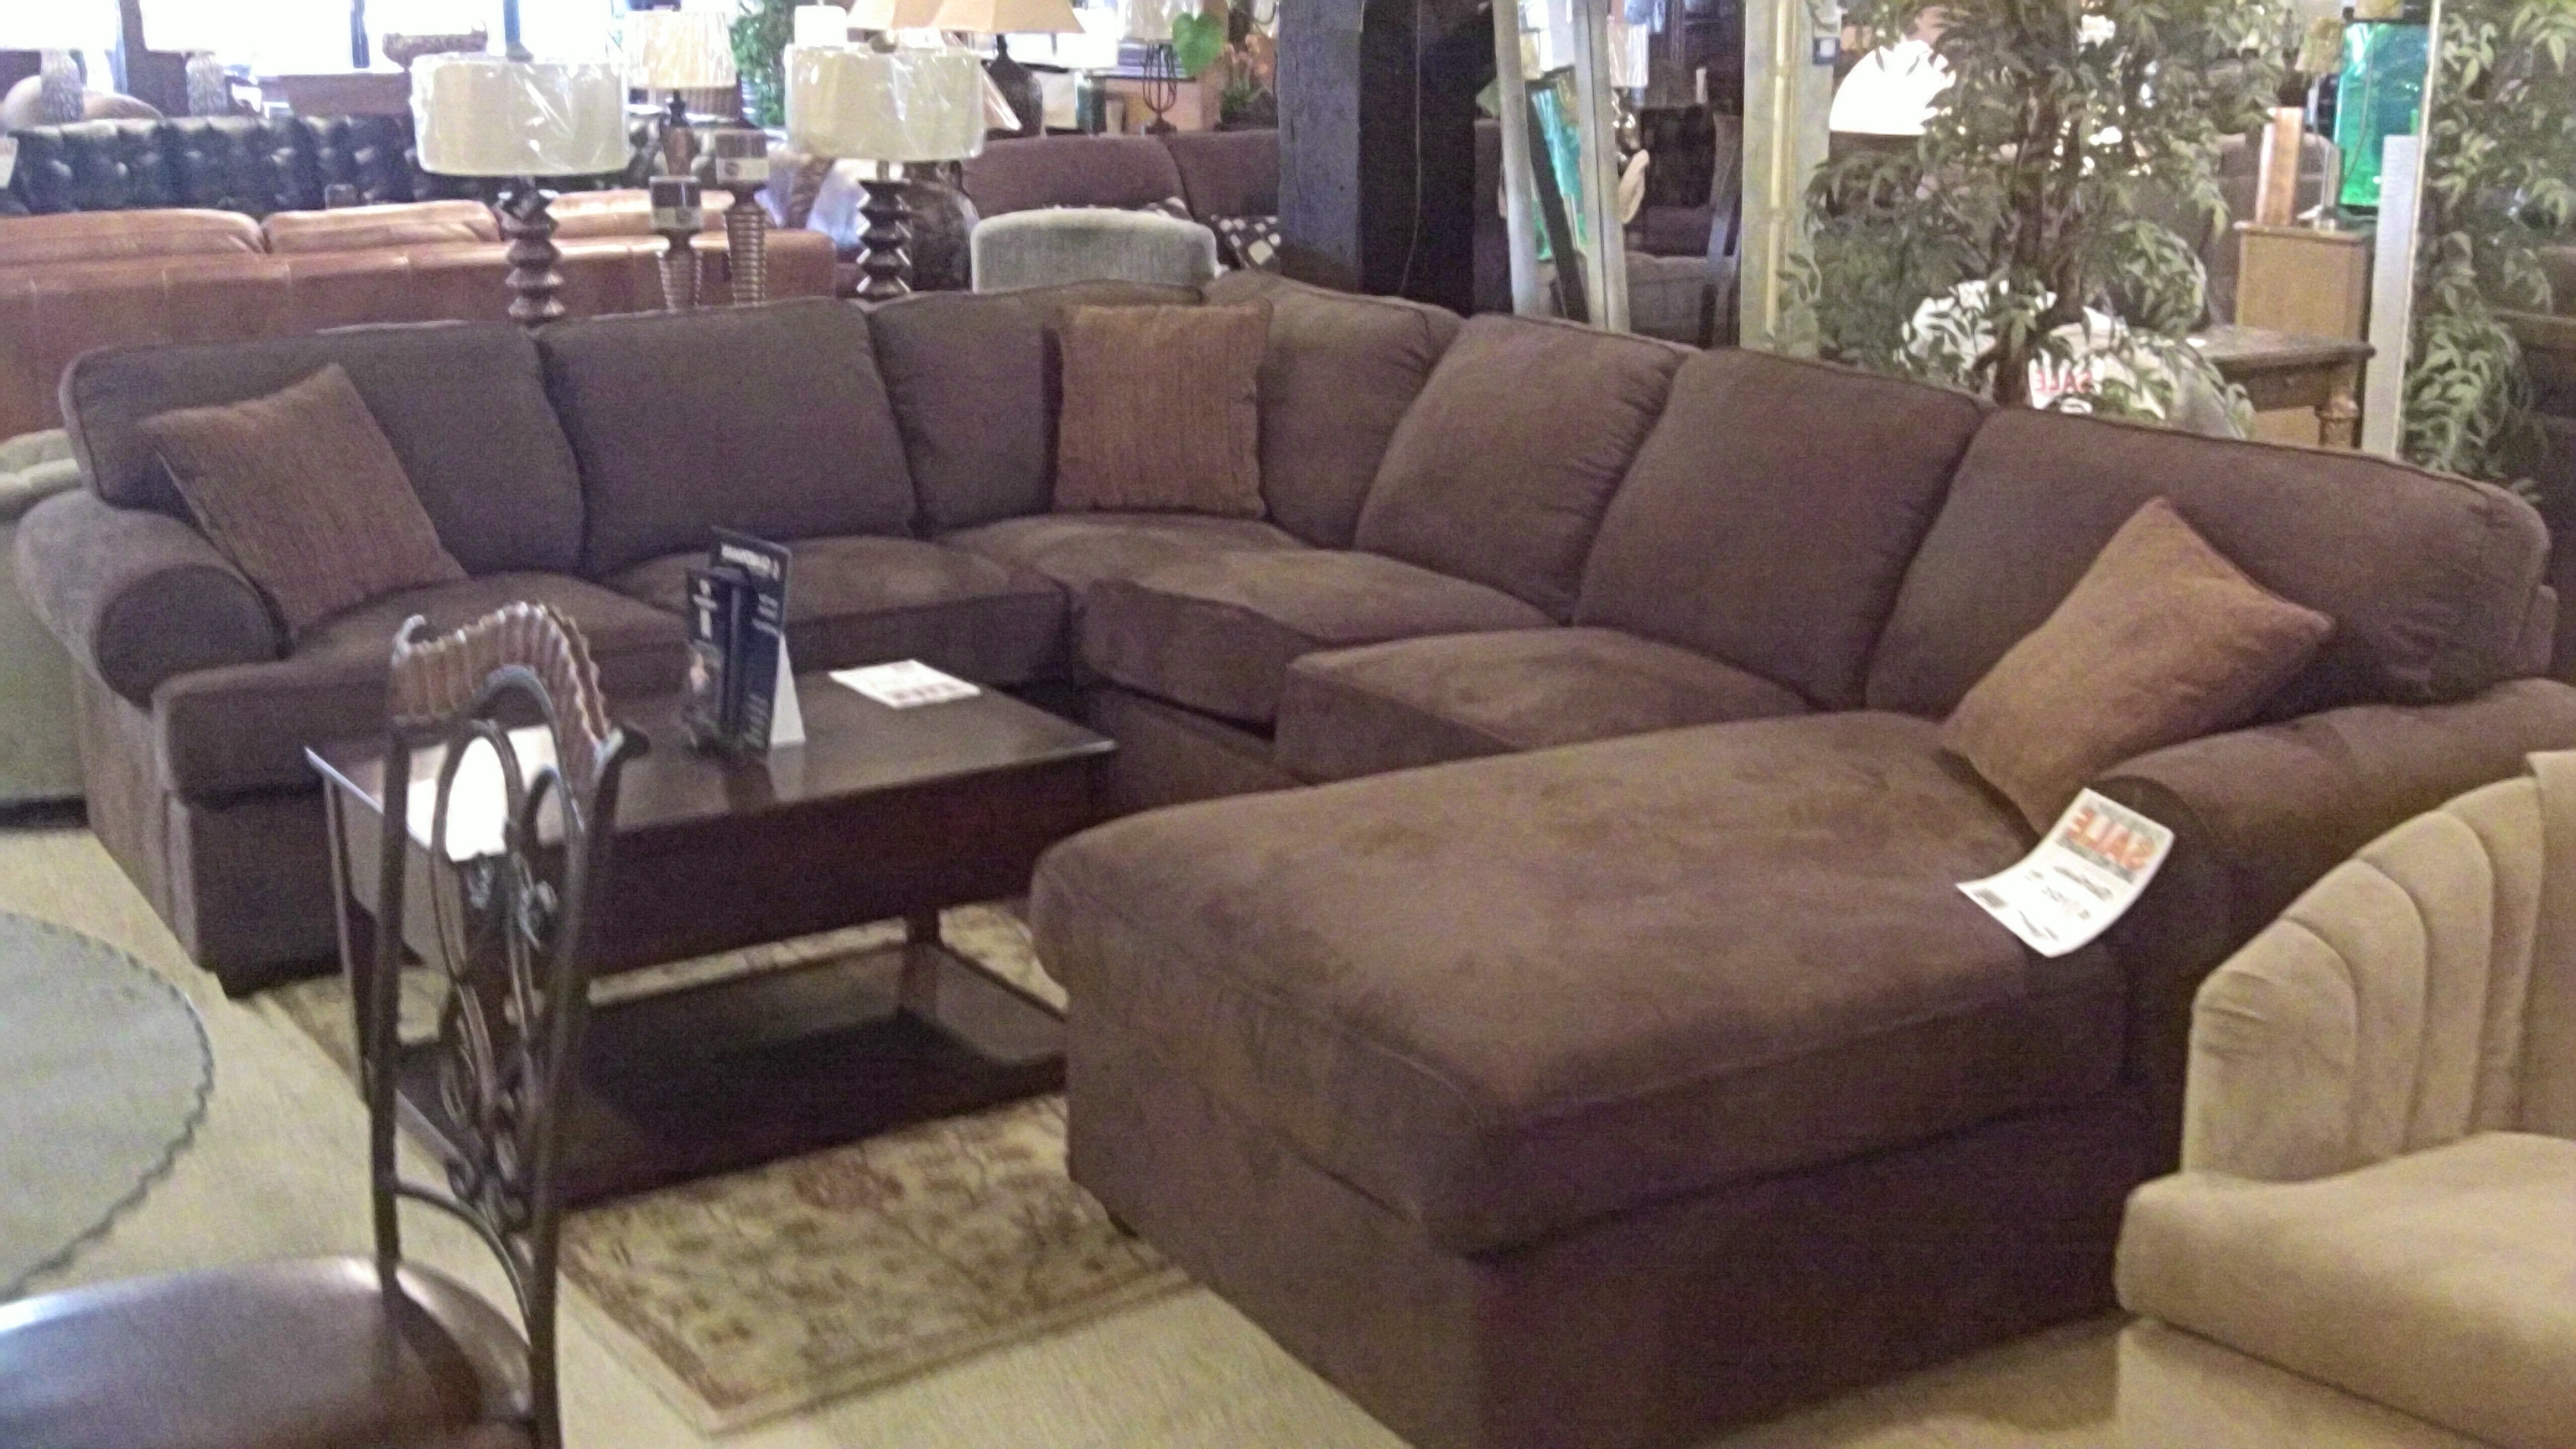 Home Design : Cool Best Modern Fabric Sectional Sofas With Chaise For Popular Sectionals With Oversized Ottoman (View 6 of 20)